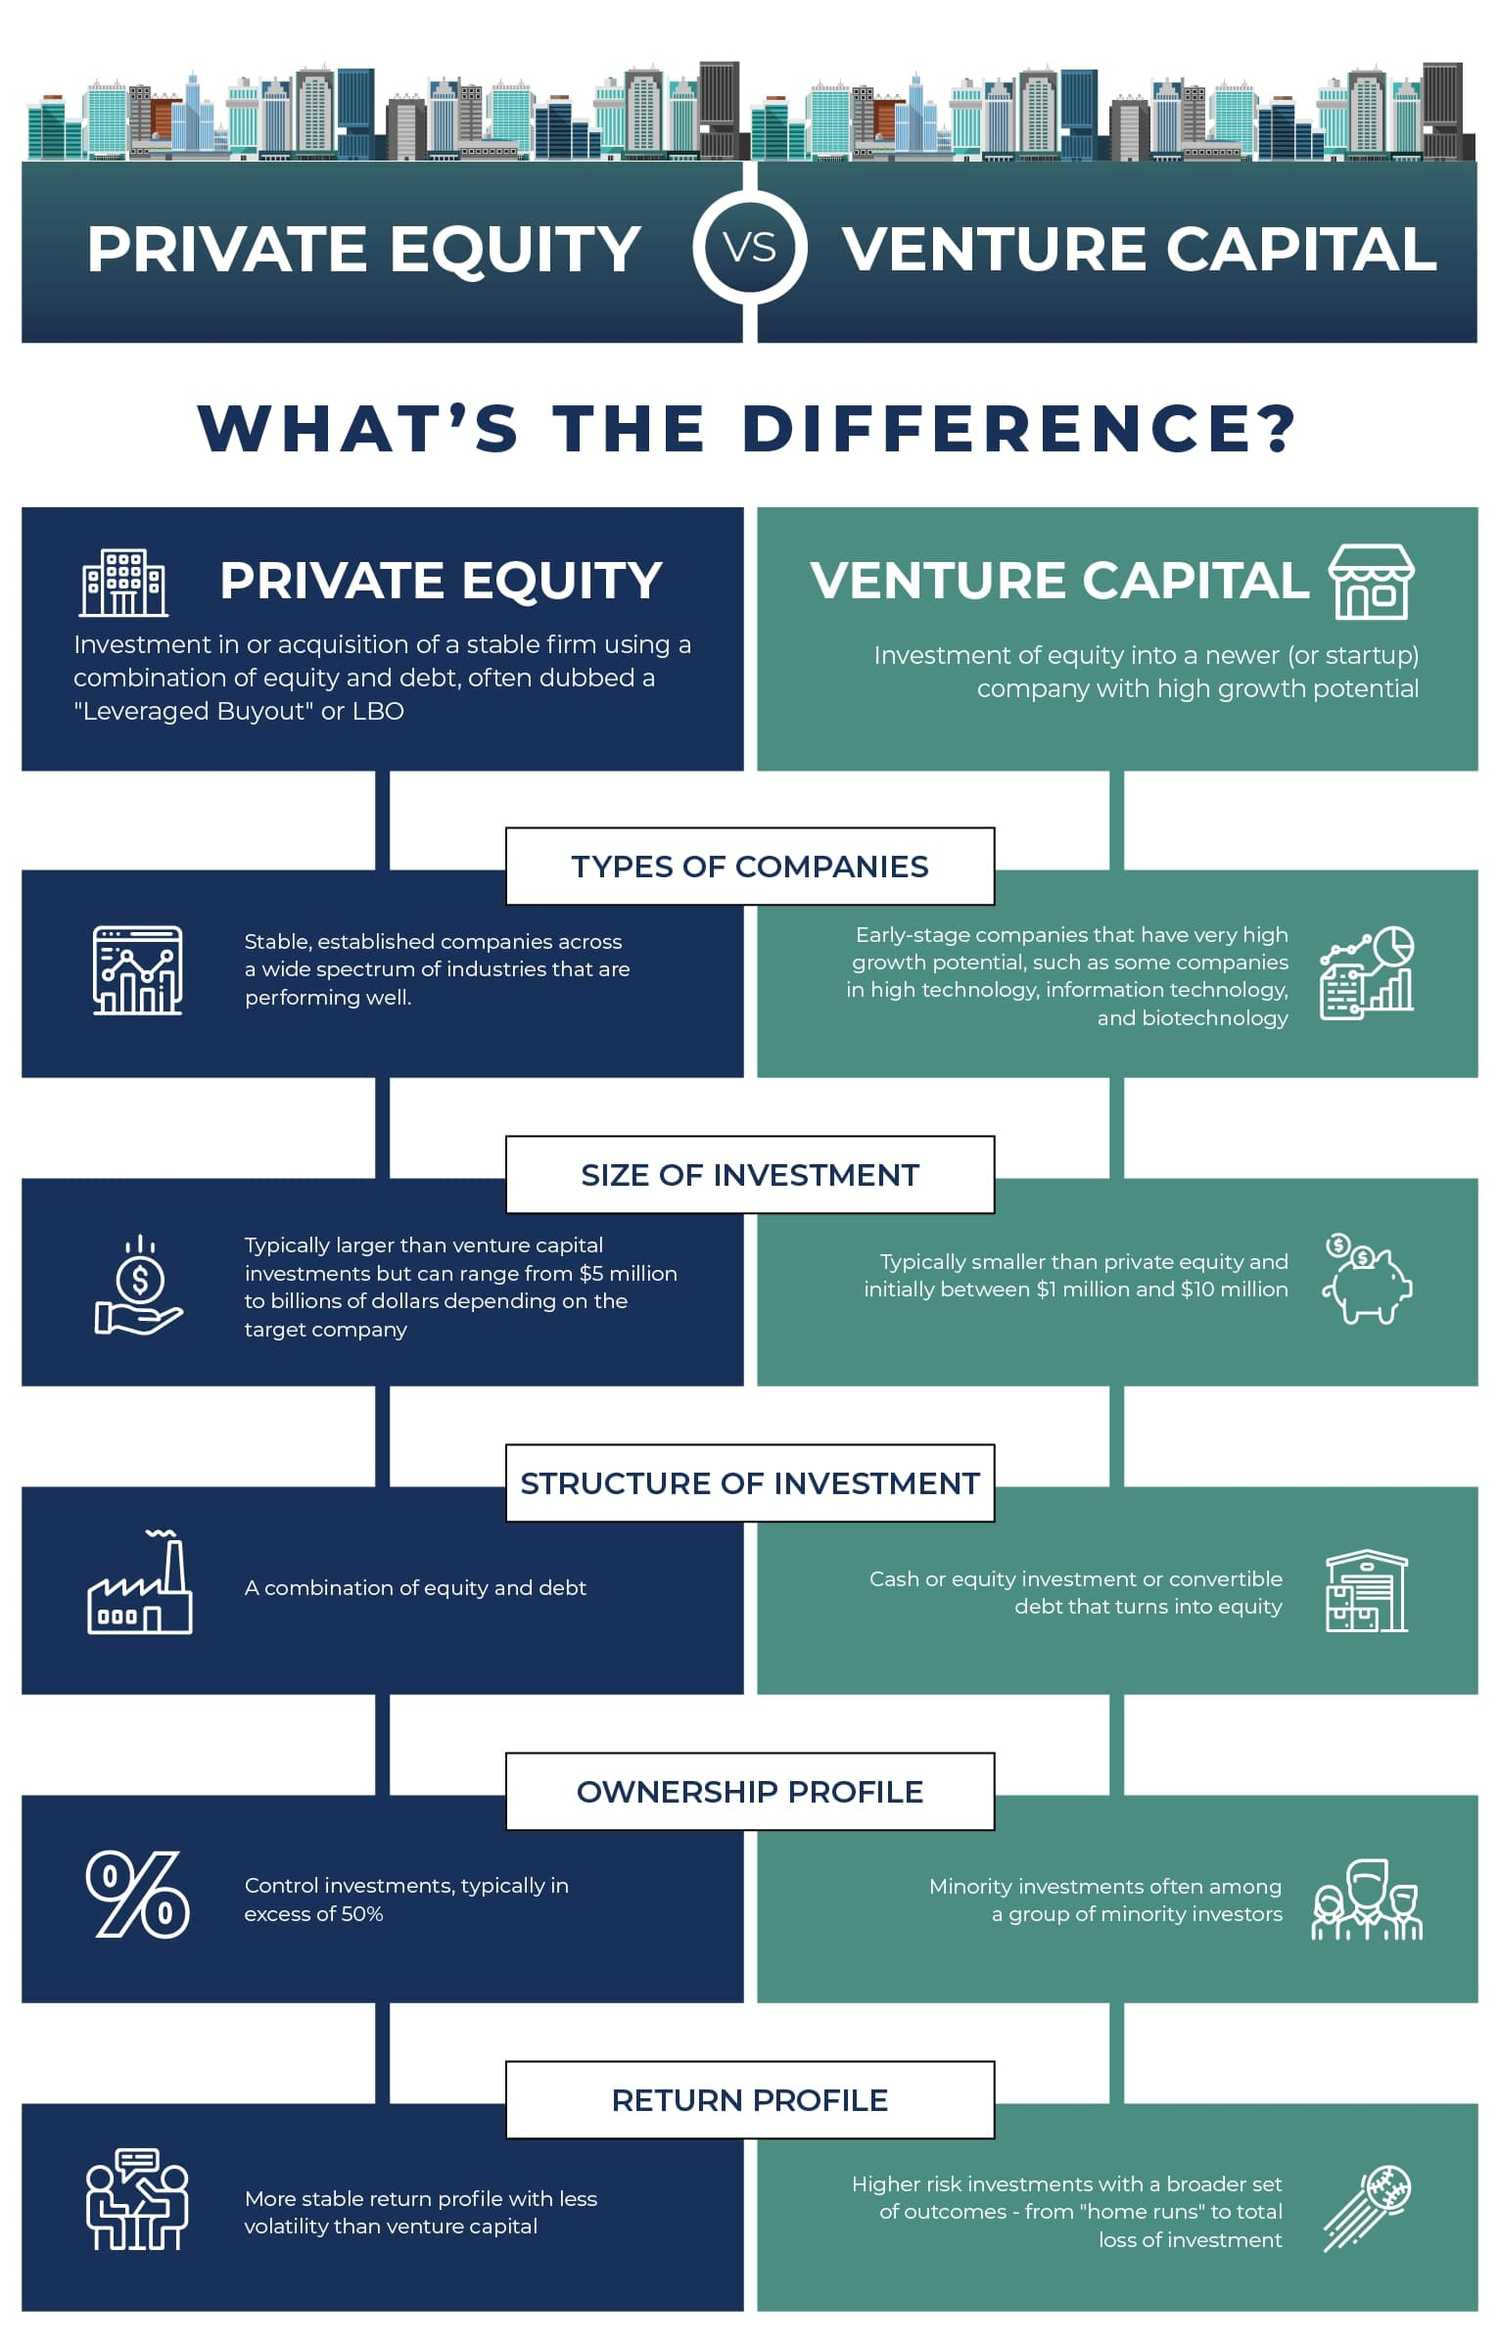 private equity vs venture capital infographic